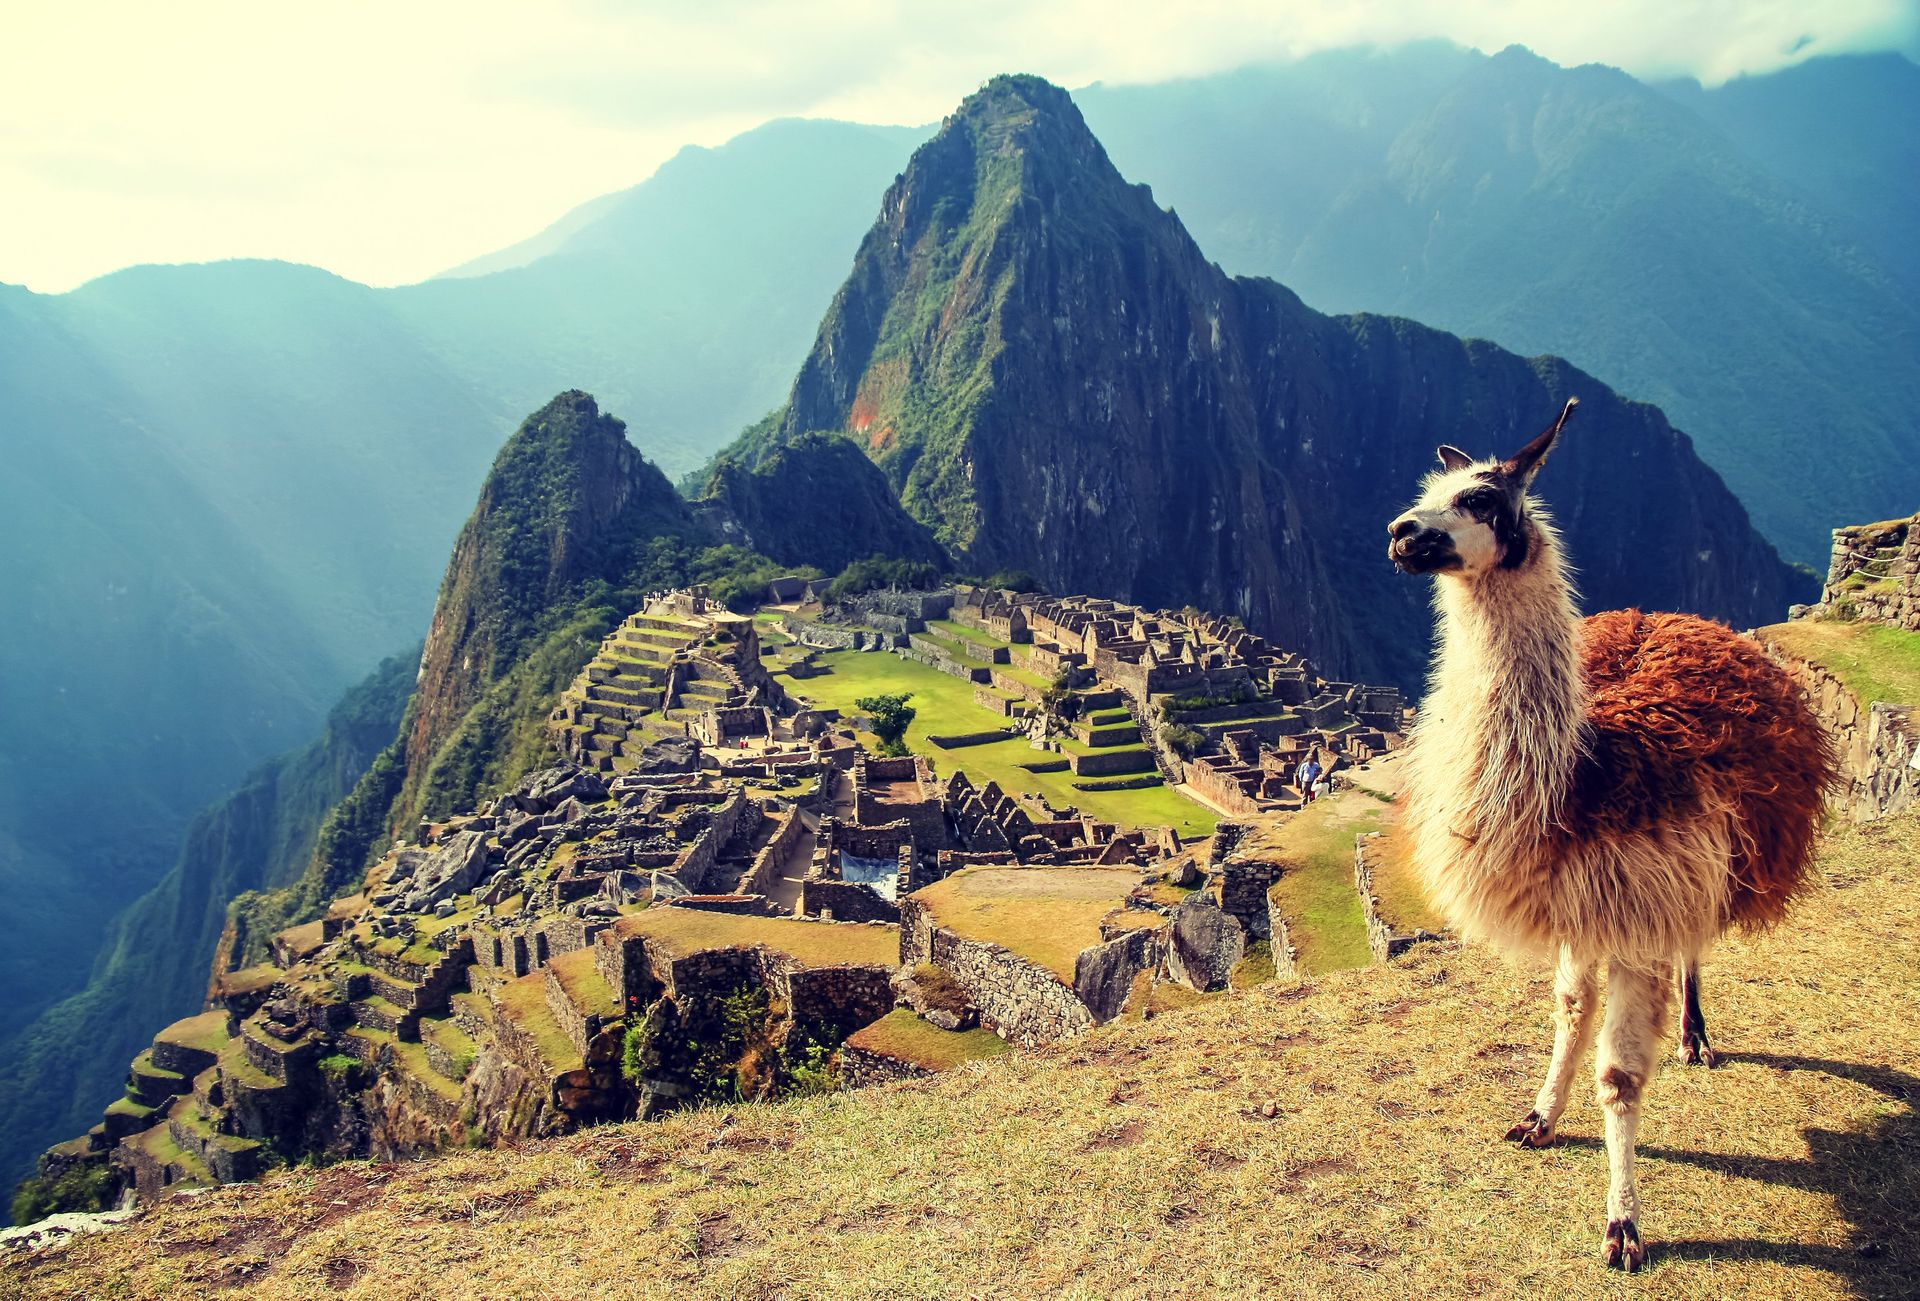 Inca Encounter Machu Picchu, Inca Trail, Peru #7bf53b40-2230-4778-a489-68eb6f3b8cc9